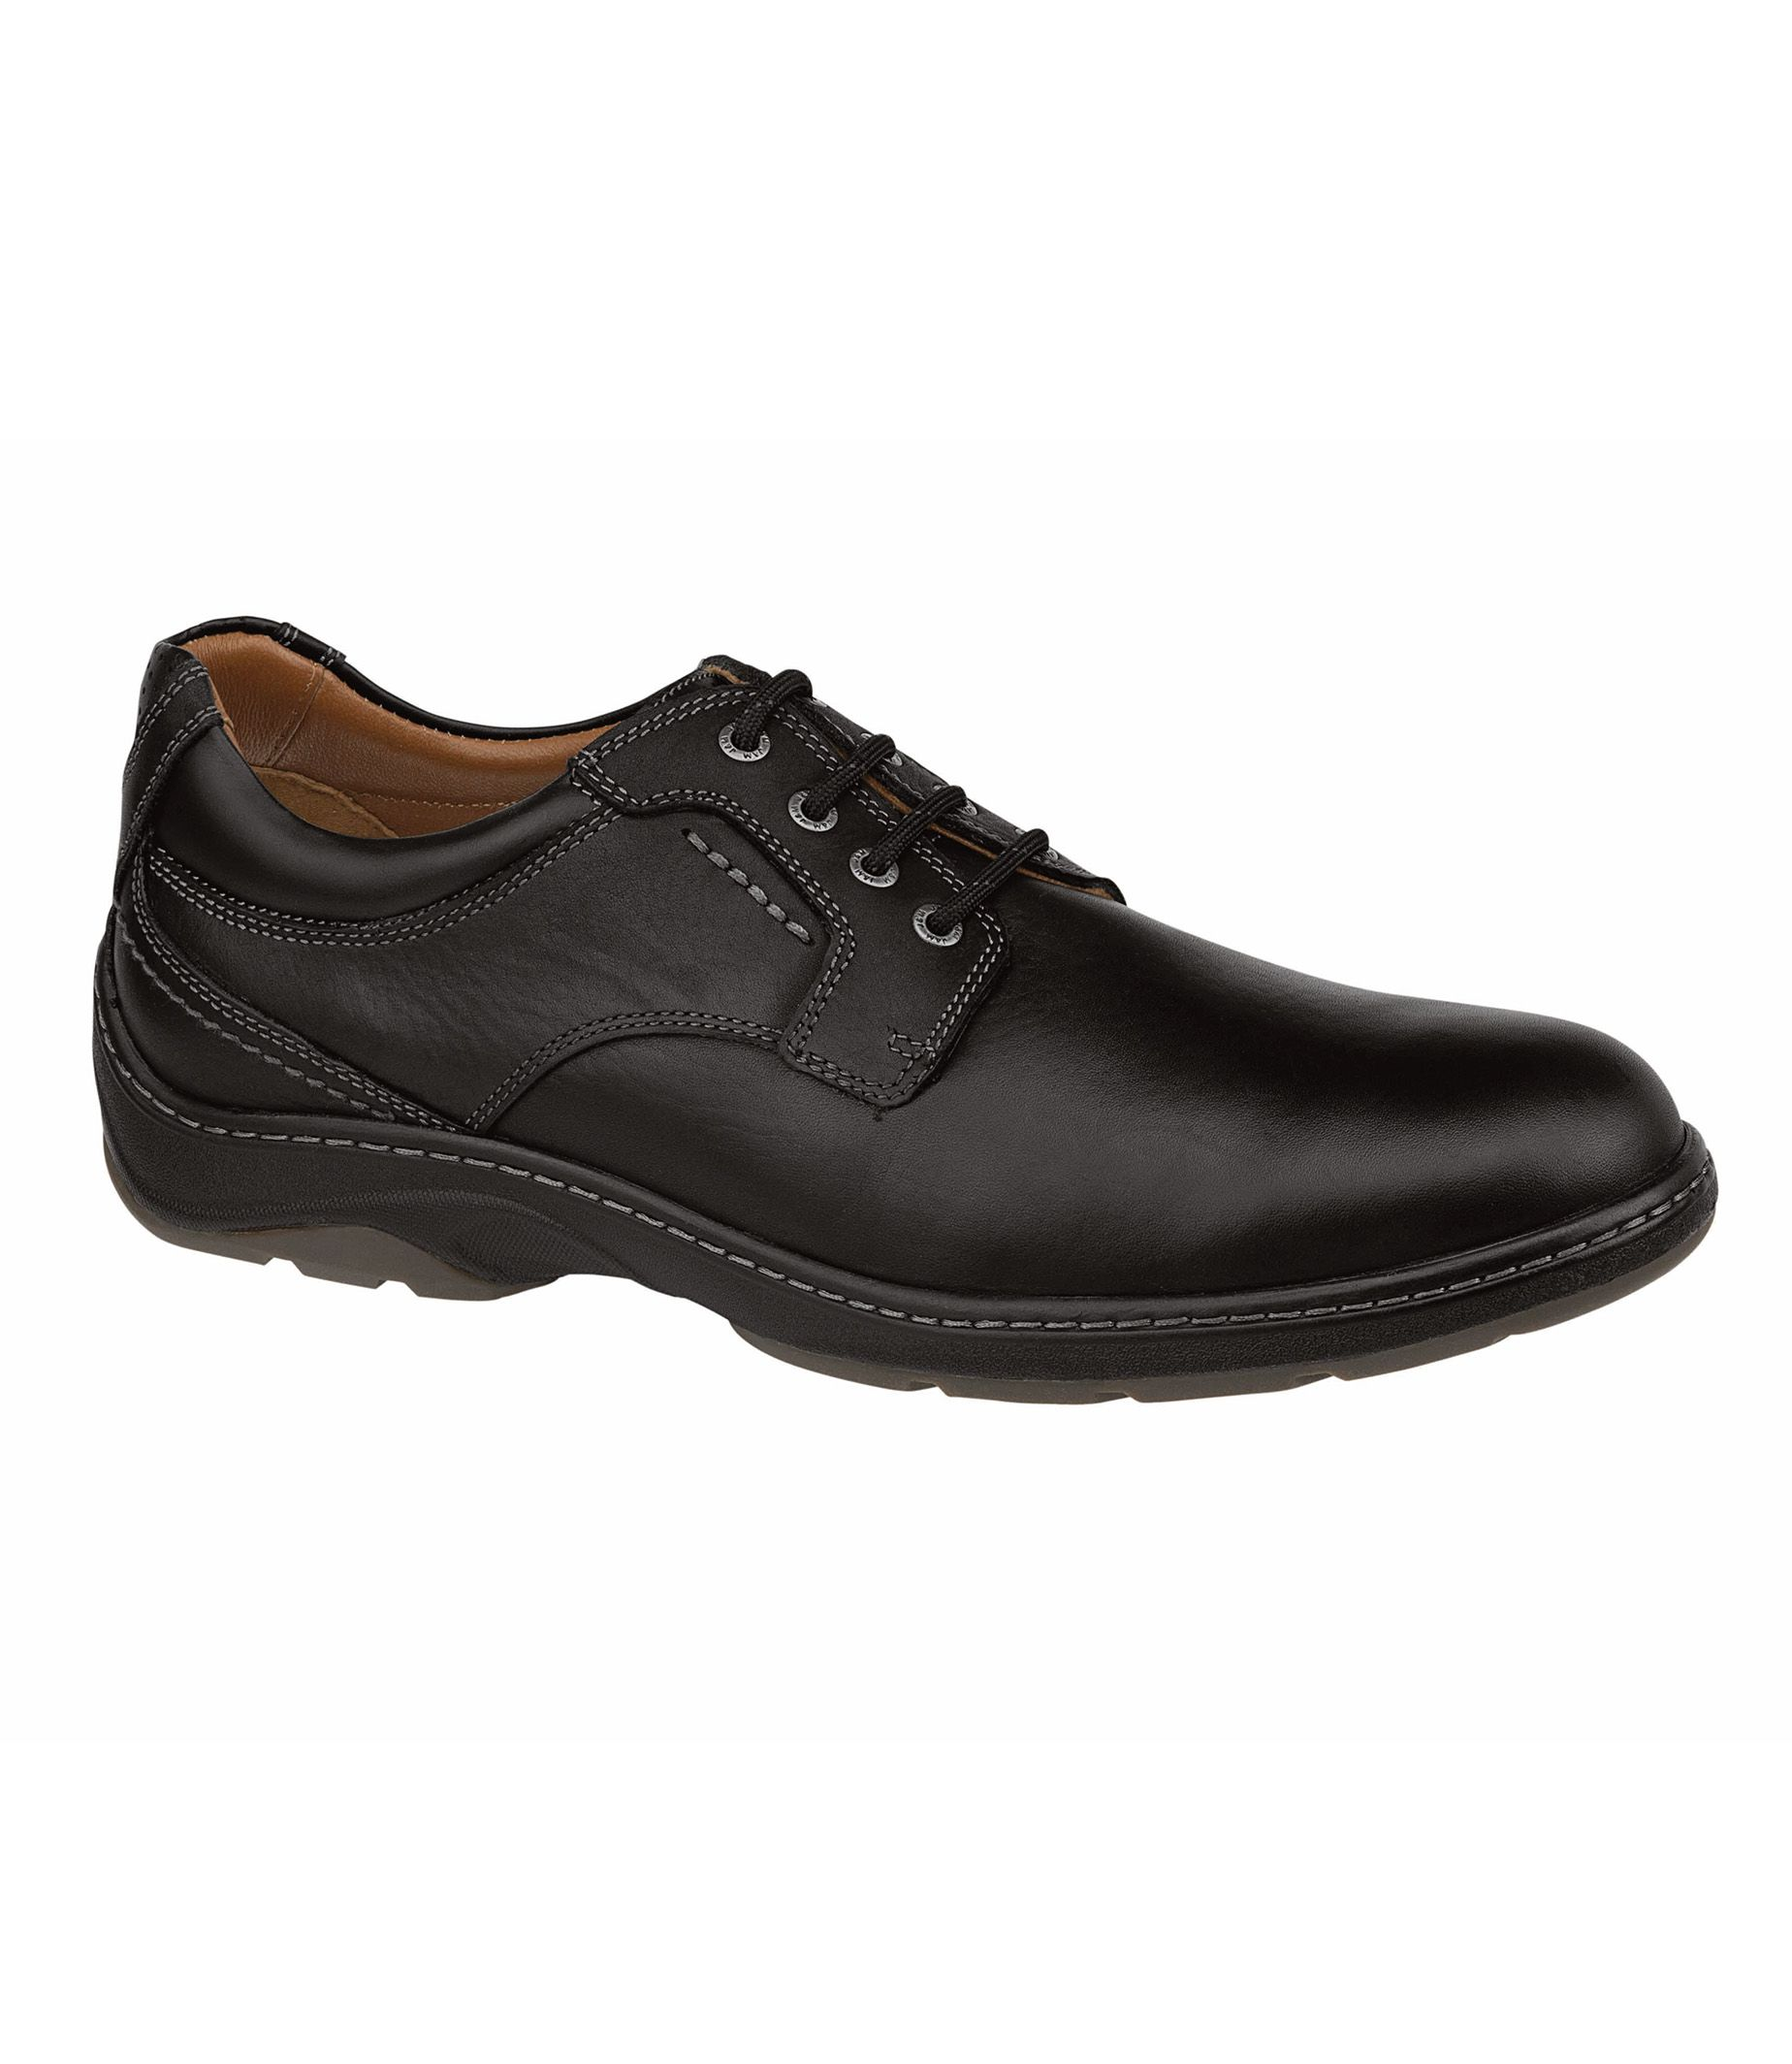 Fairfield Plain Toe Shoe by Johnston and Murphy